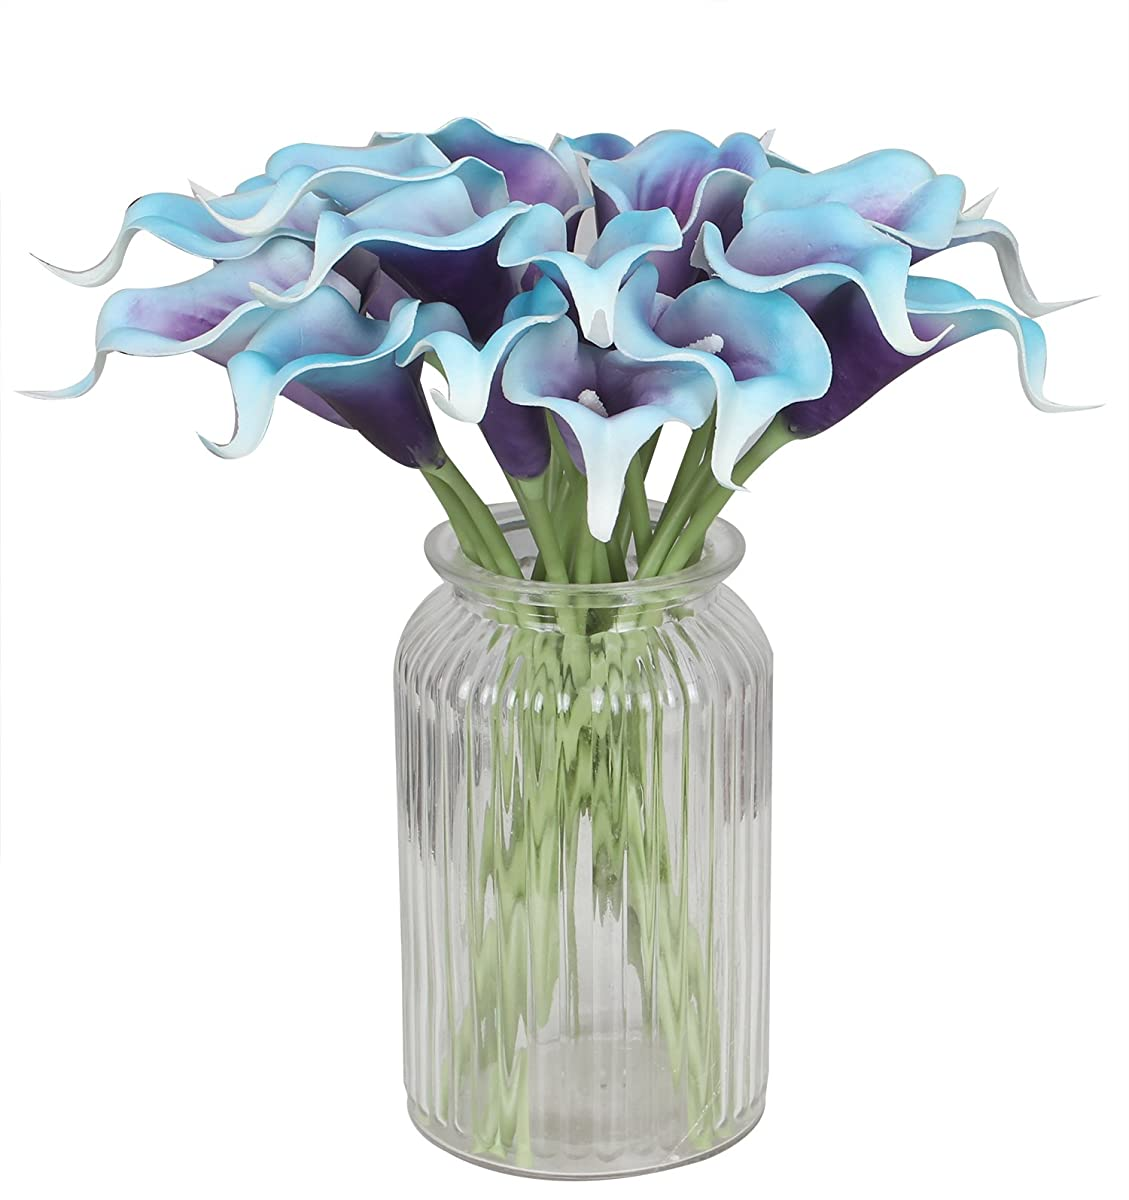 Duovlo 20pcs Calla Lily Bridal Wedding Bouquet Lataex Real Touch Artificial Flower Home Party Decor (Purple in Blue)